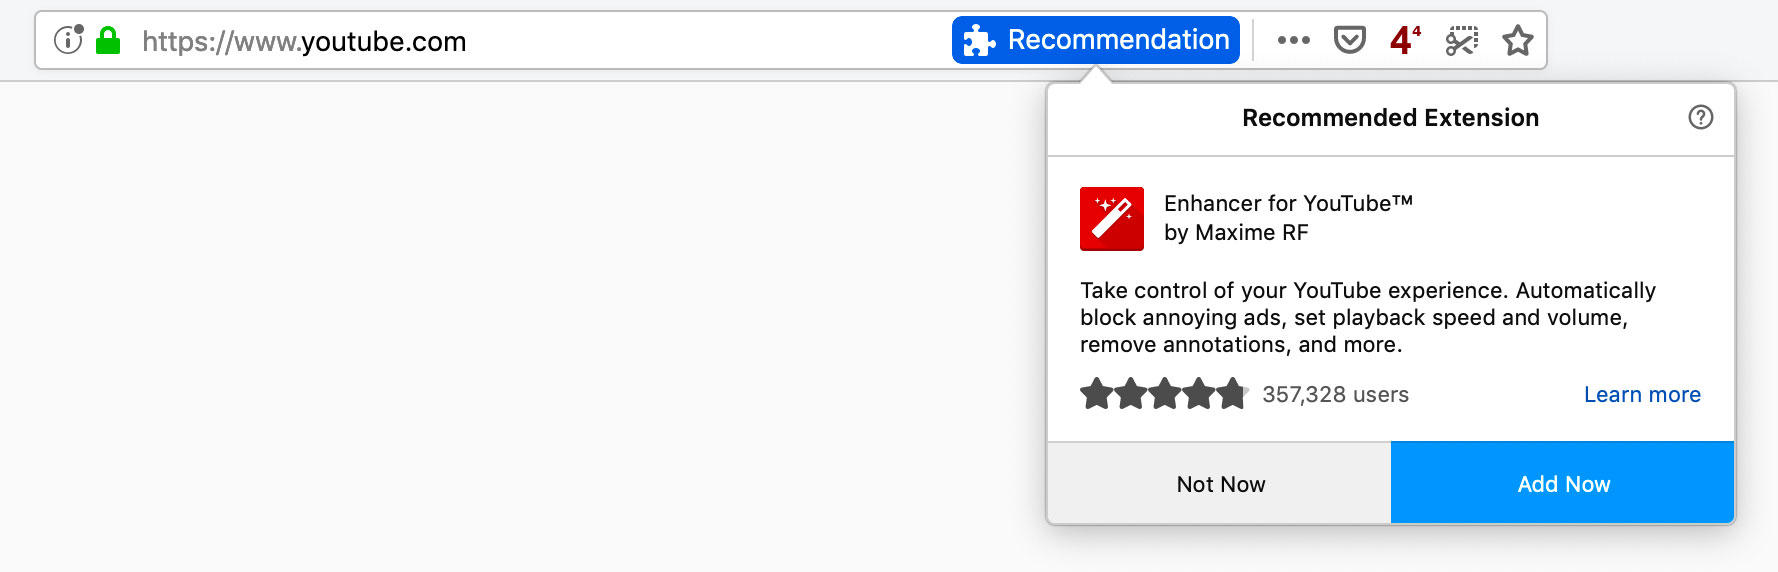 If you visit YouTube with Firefox, you may see this prompt to try the Enhancer for YouTube extension.